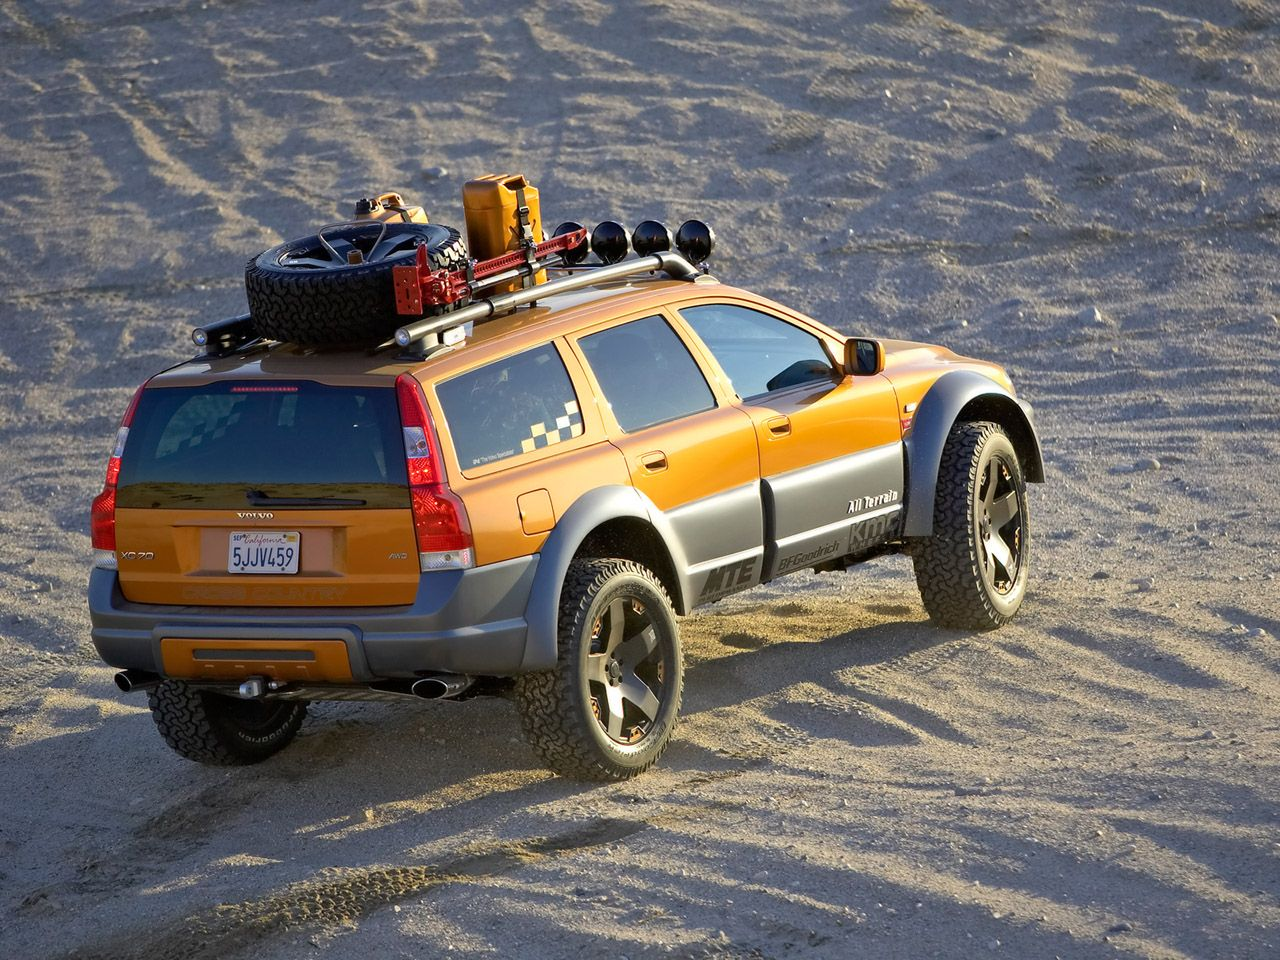 2005 volvo xc70 at concept ra top 1280x960